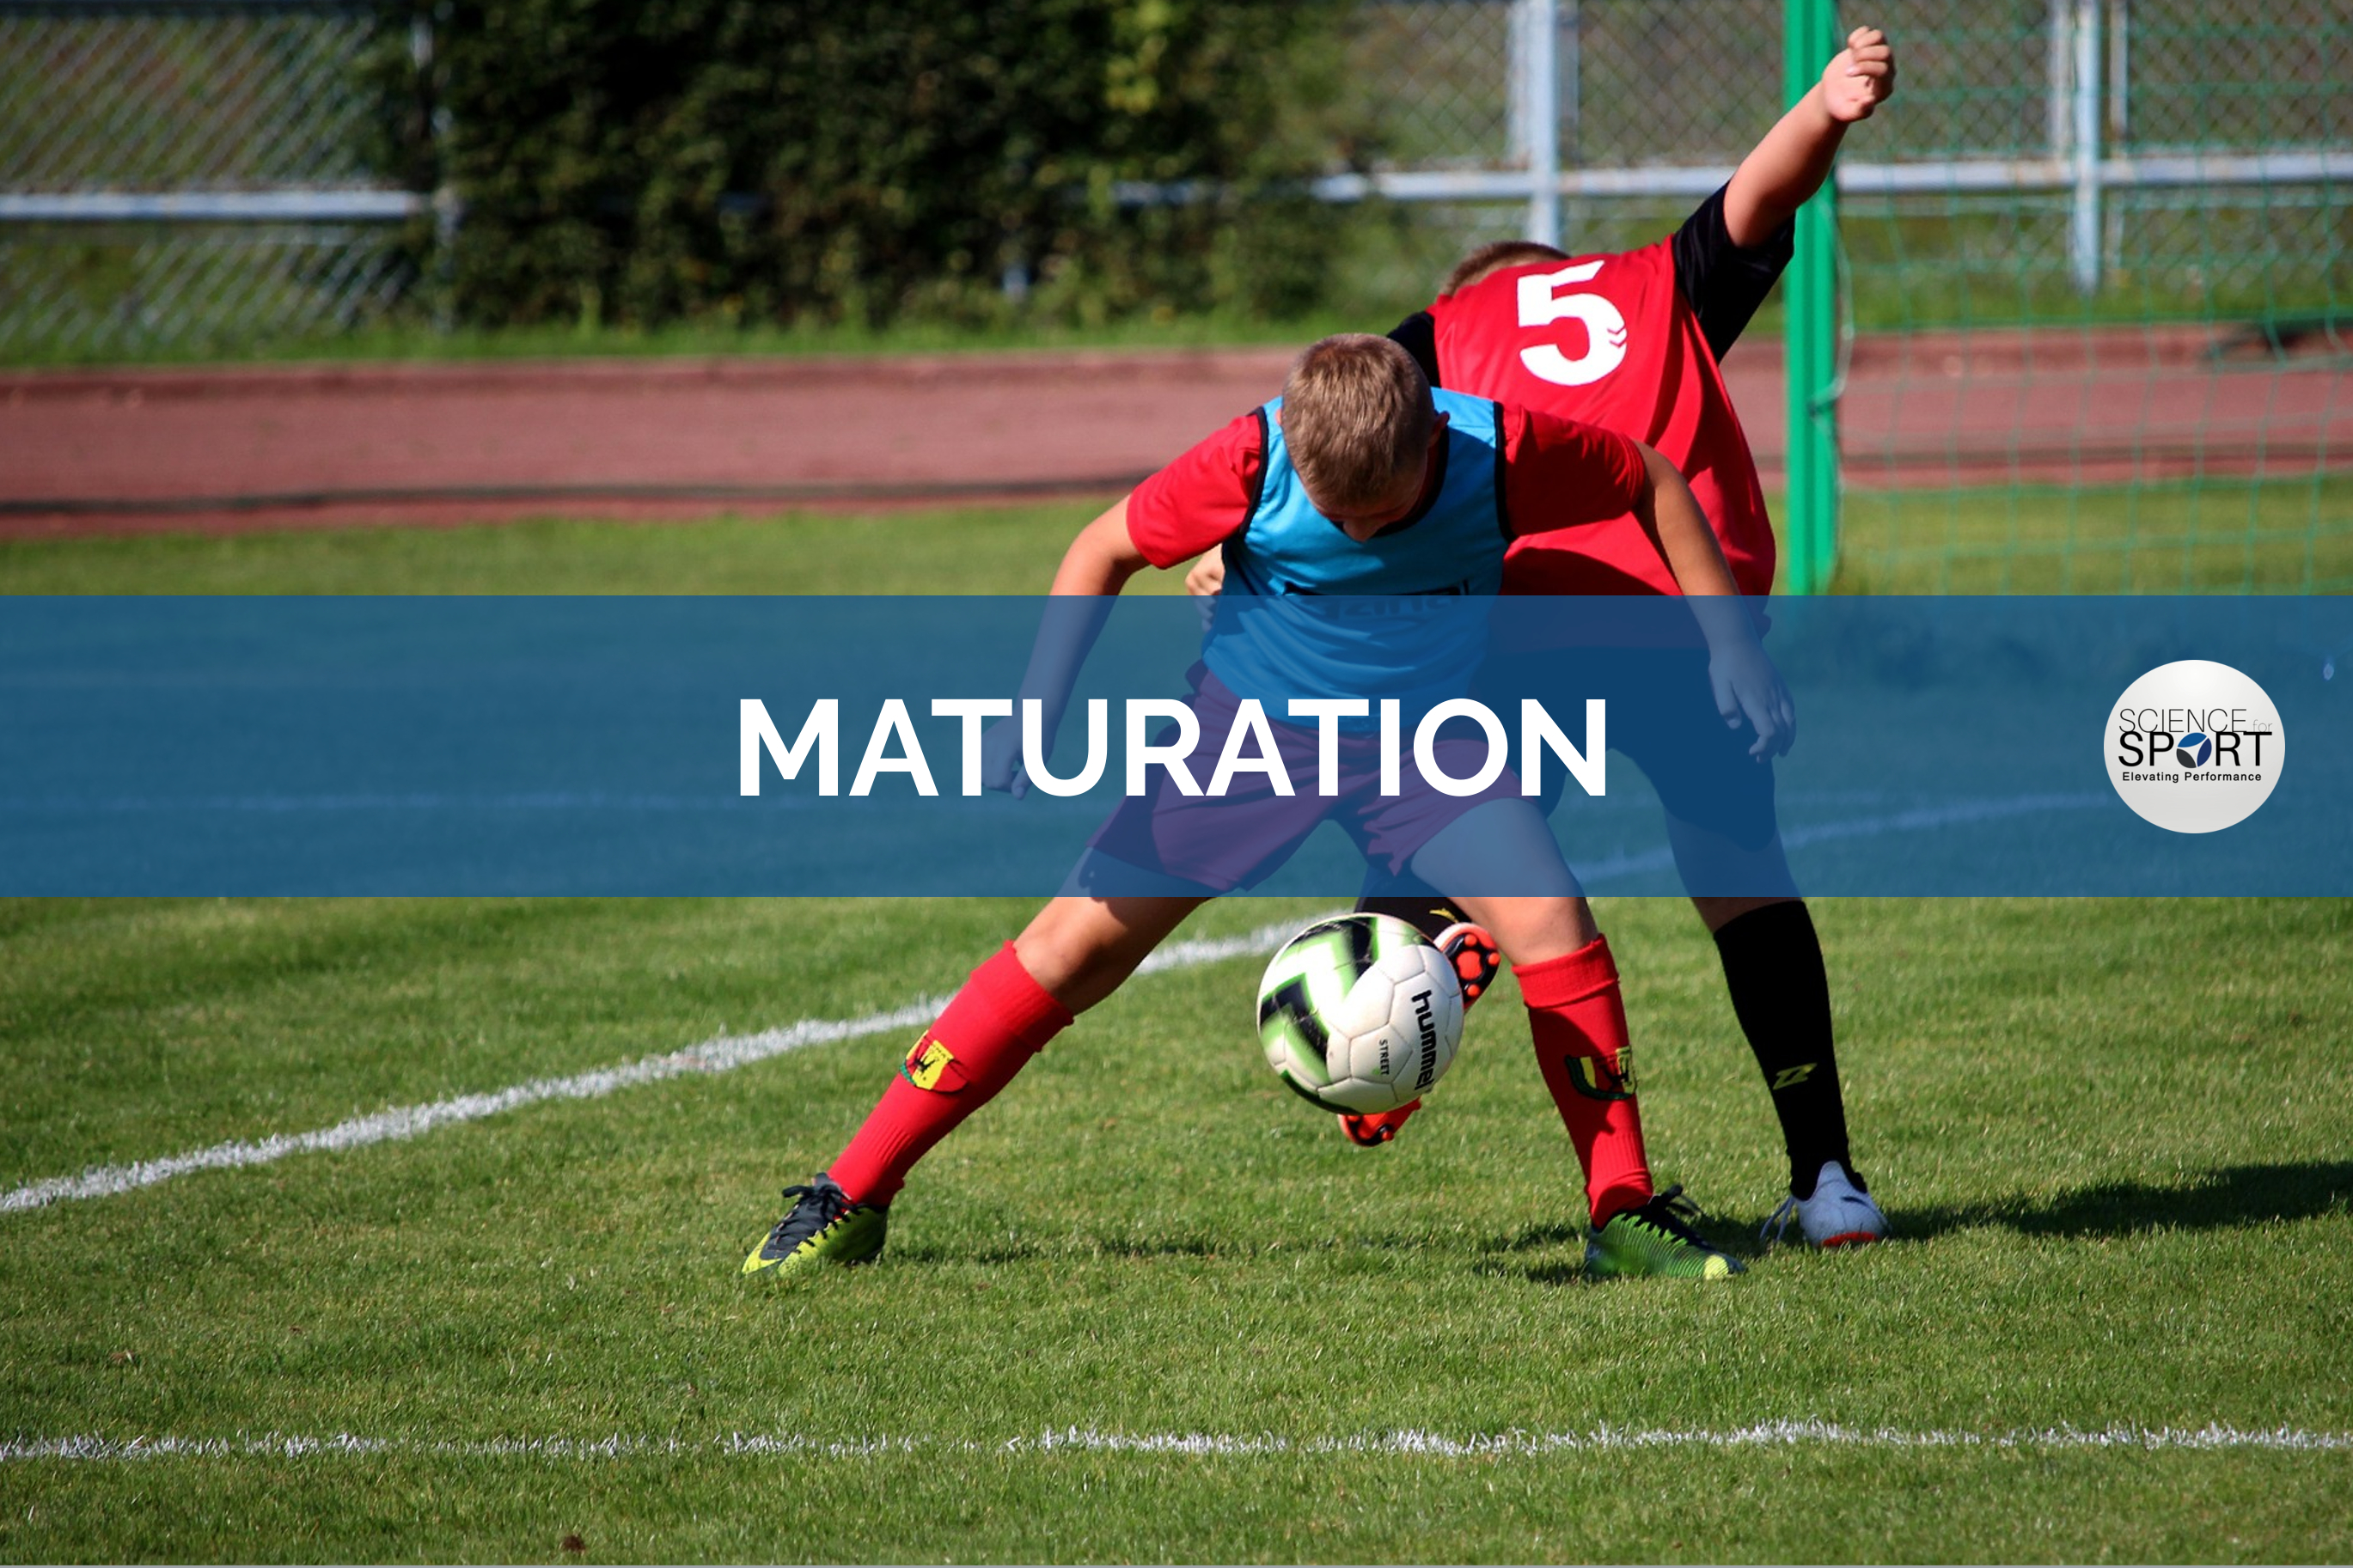 Maturation | Science for Sport